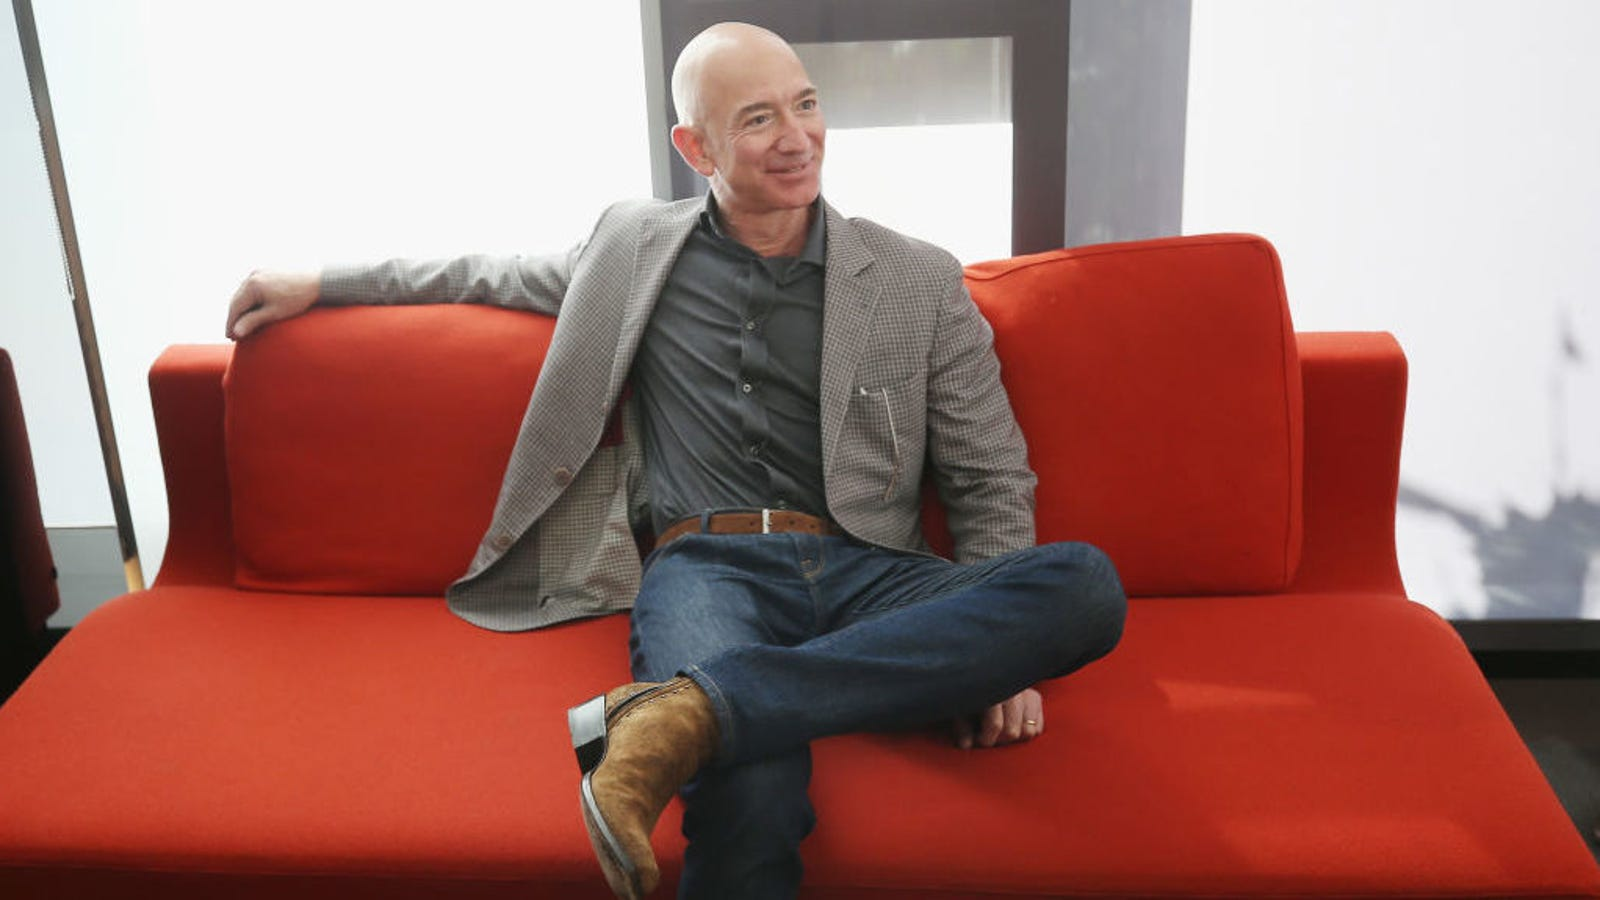 Brace Yourselves, This Jeff Bezos Scandal Now Involves Dick Pics